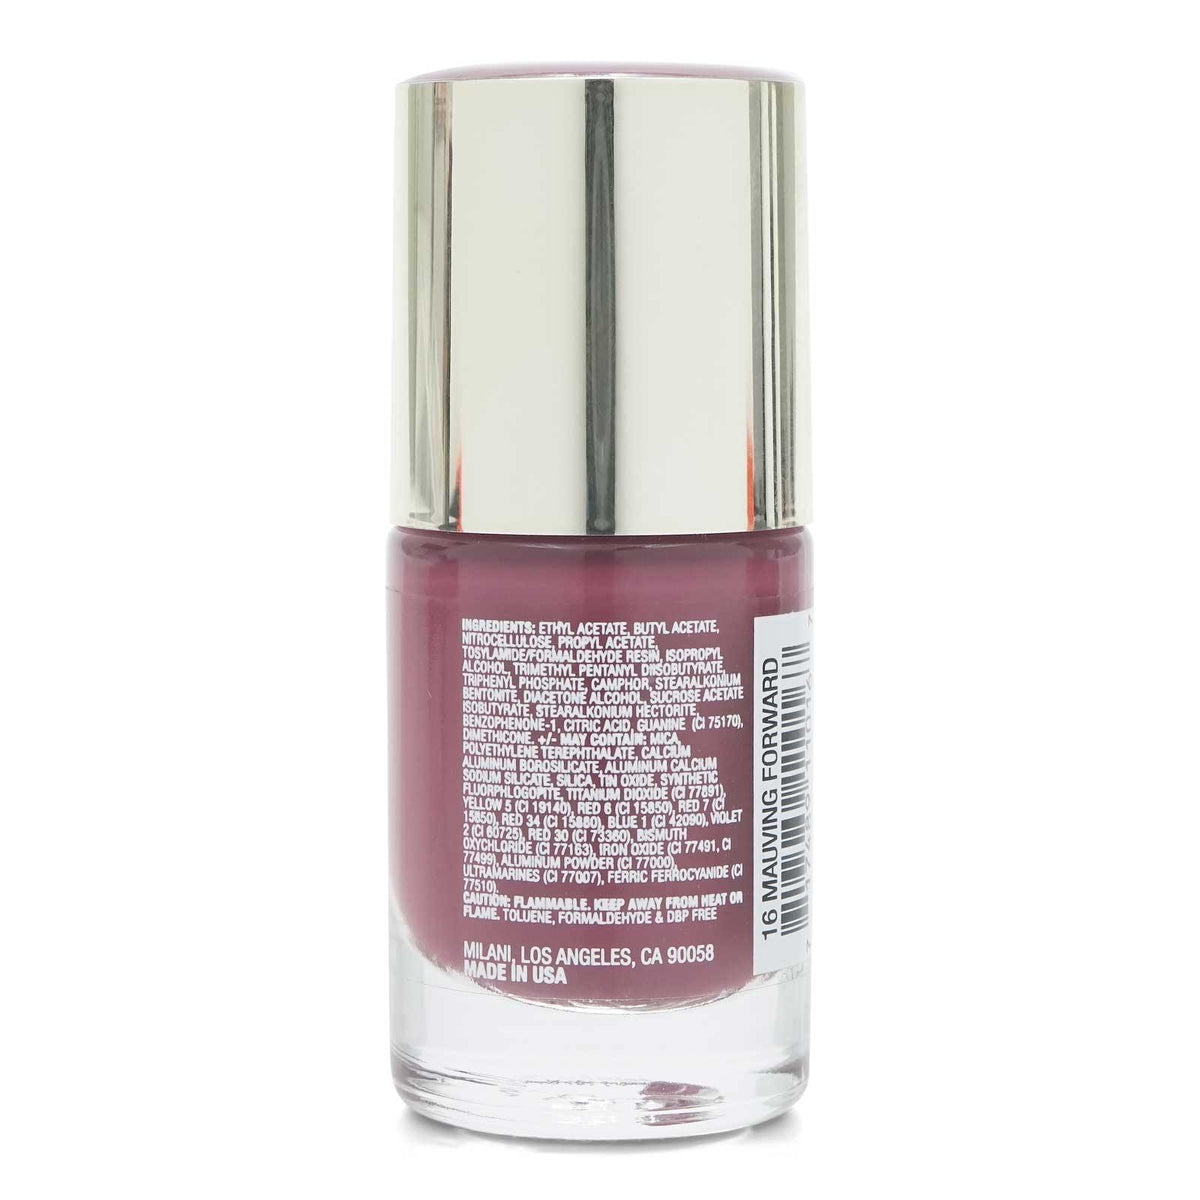 MILANI COLOR STATEMENT NAIL COLOR (24/cs)